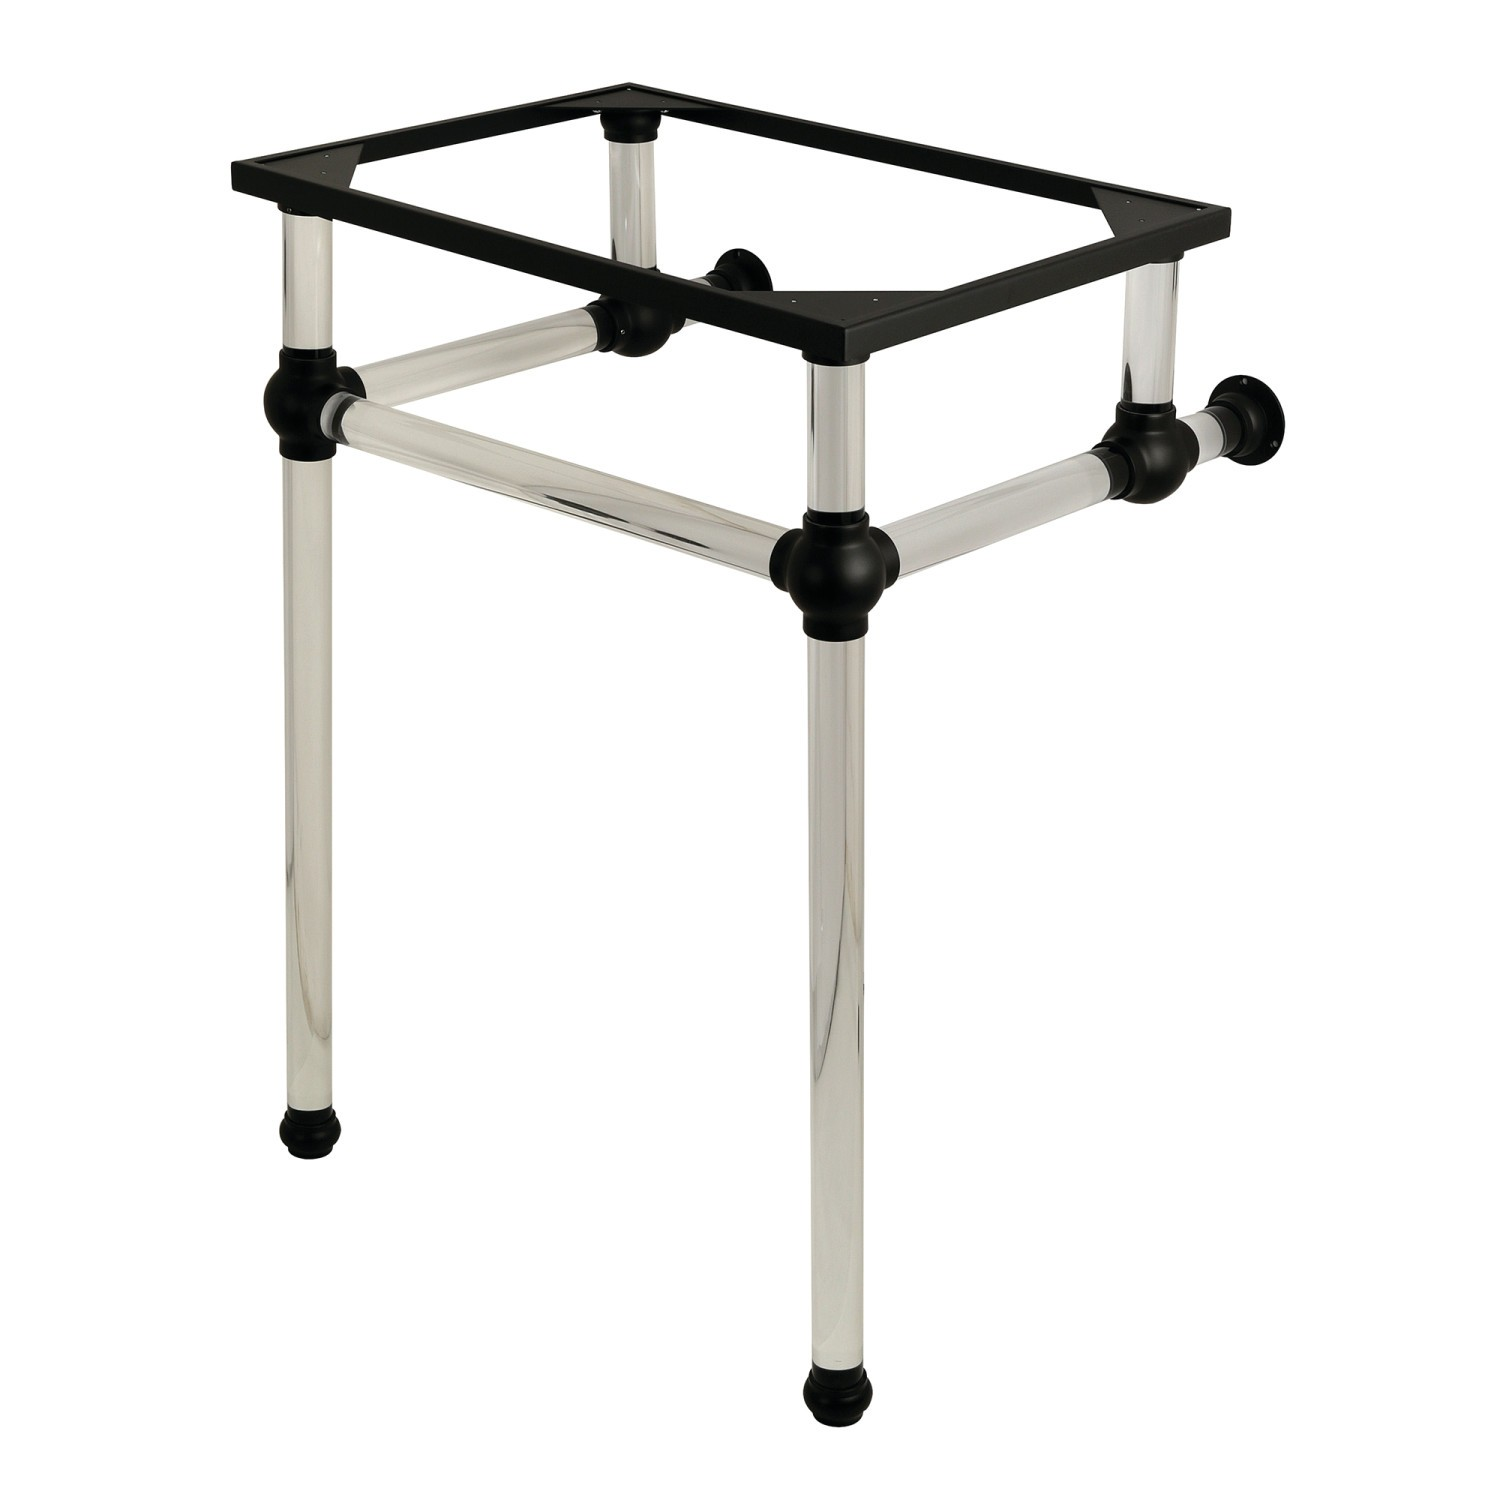 Kingston Brass Vah282033c Fauceture Templeton Console Basin Holder With Acrylic Pedestal Kingston Brass Vah282033mb